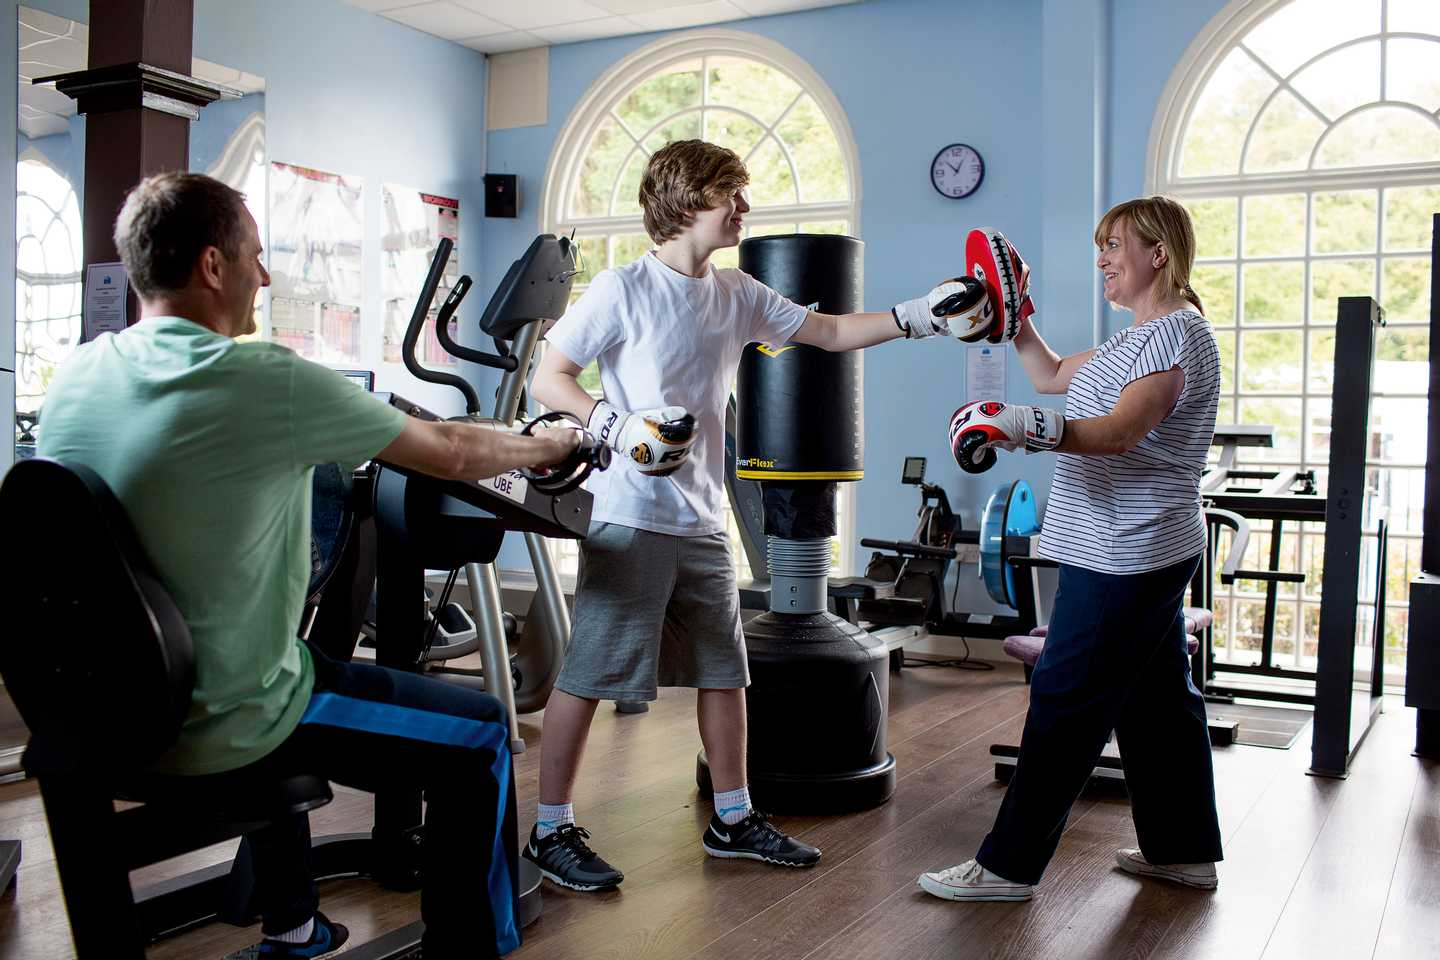 Guests working out in the gym